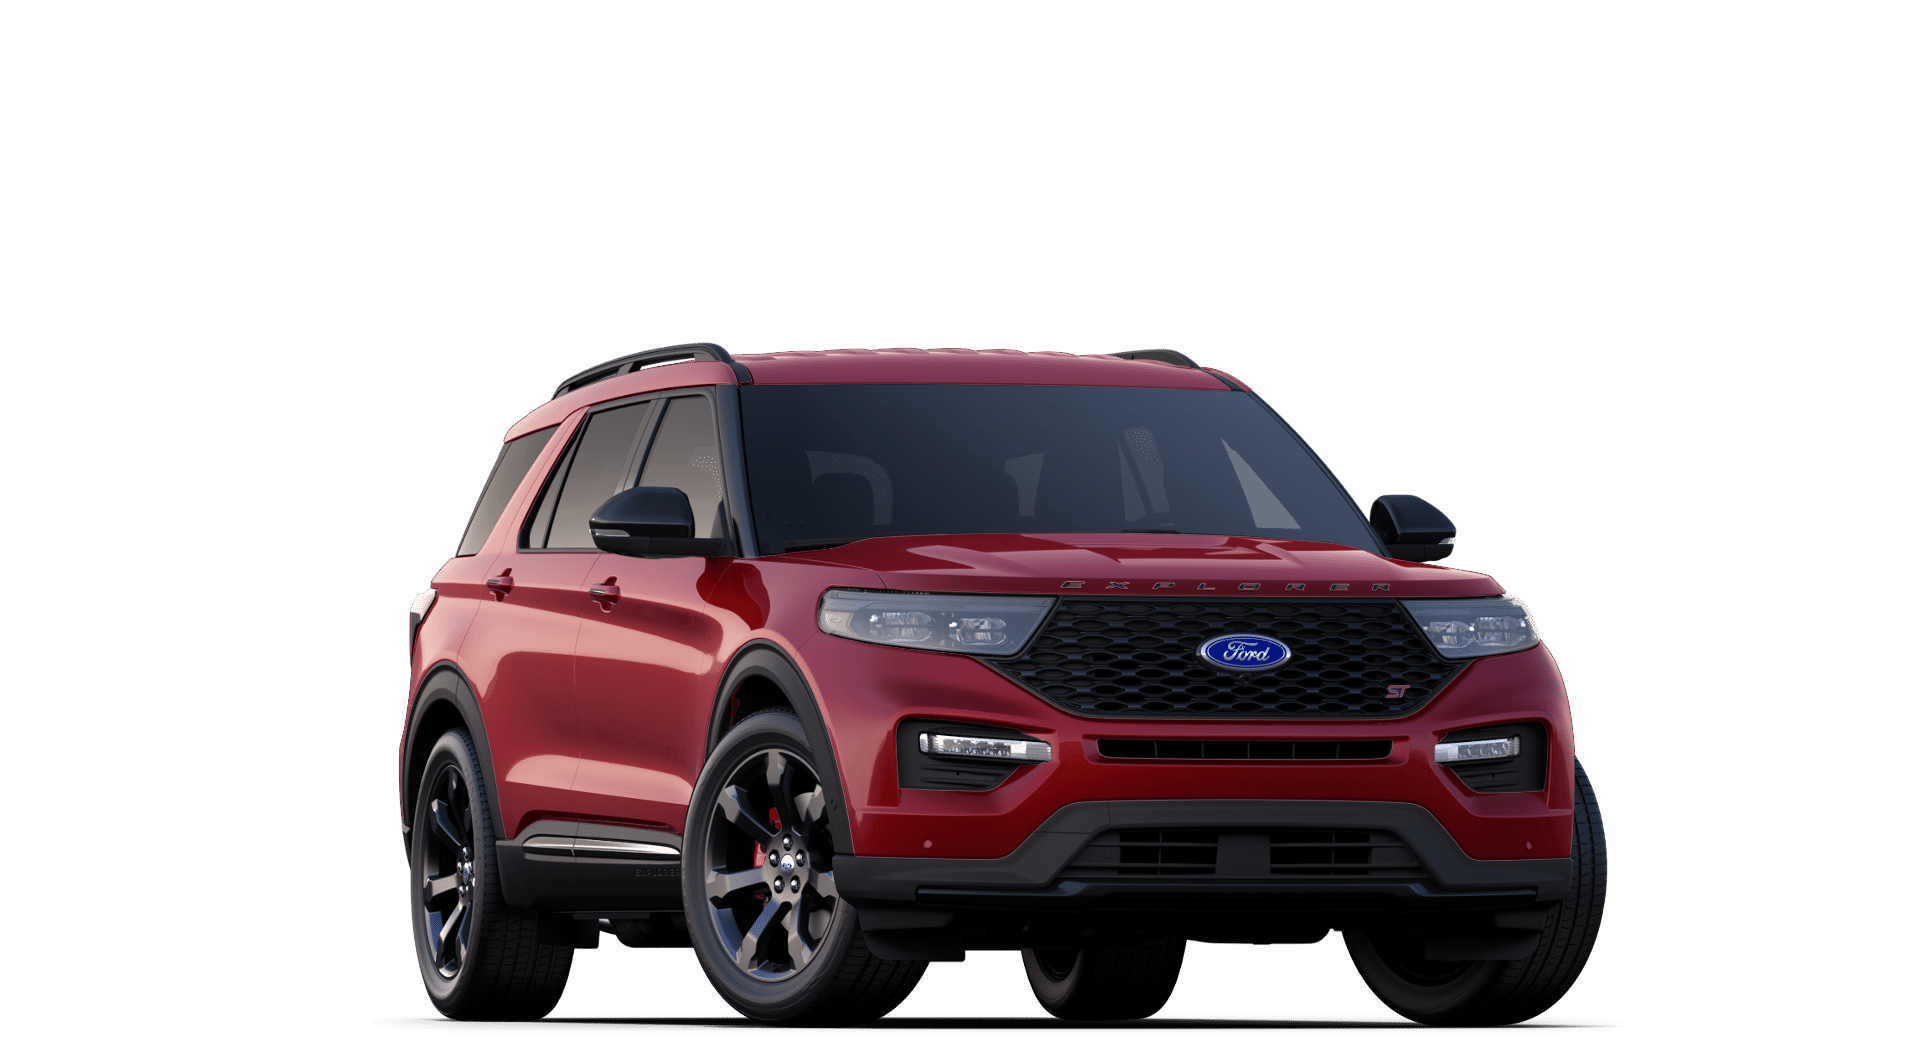 2020 Ford Explorer Build Price 2020 Ford Explorer Ford